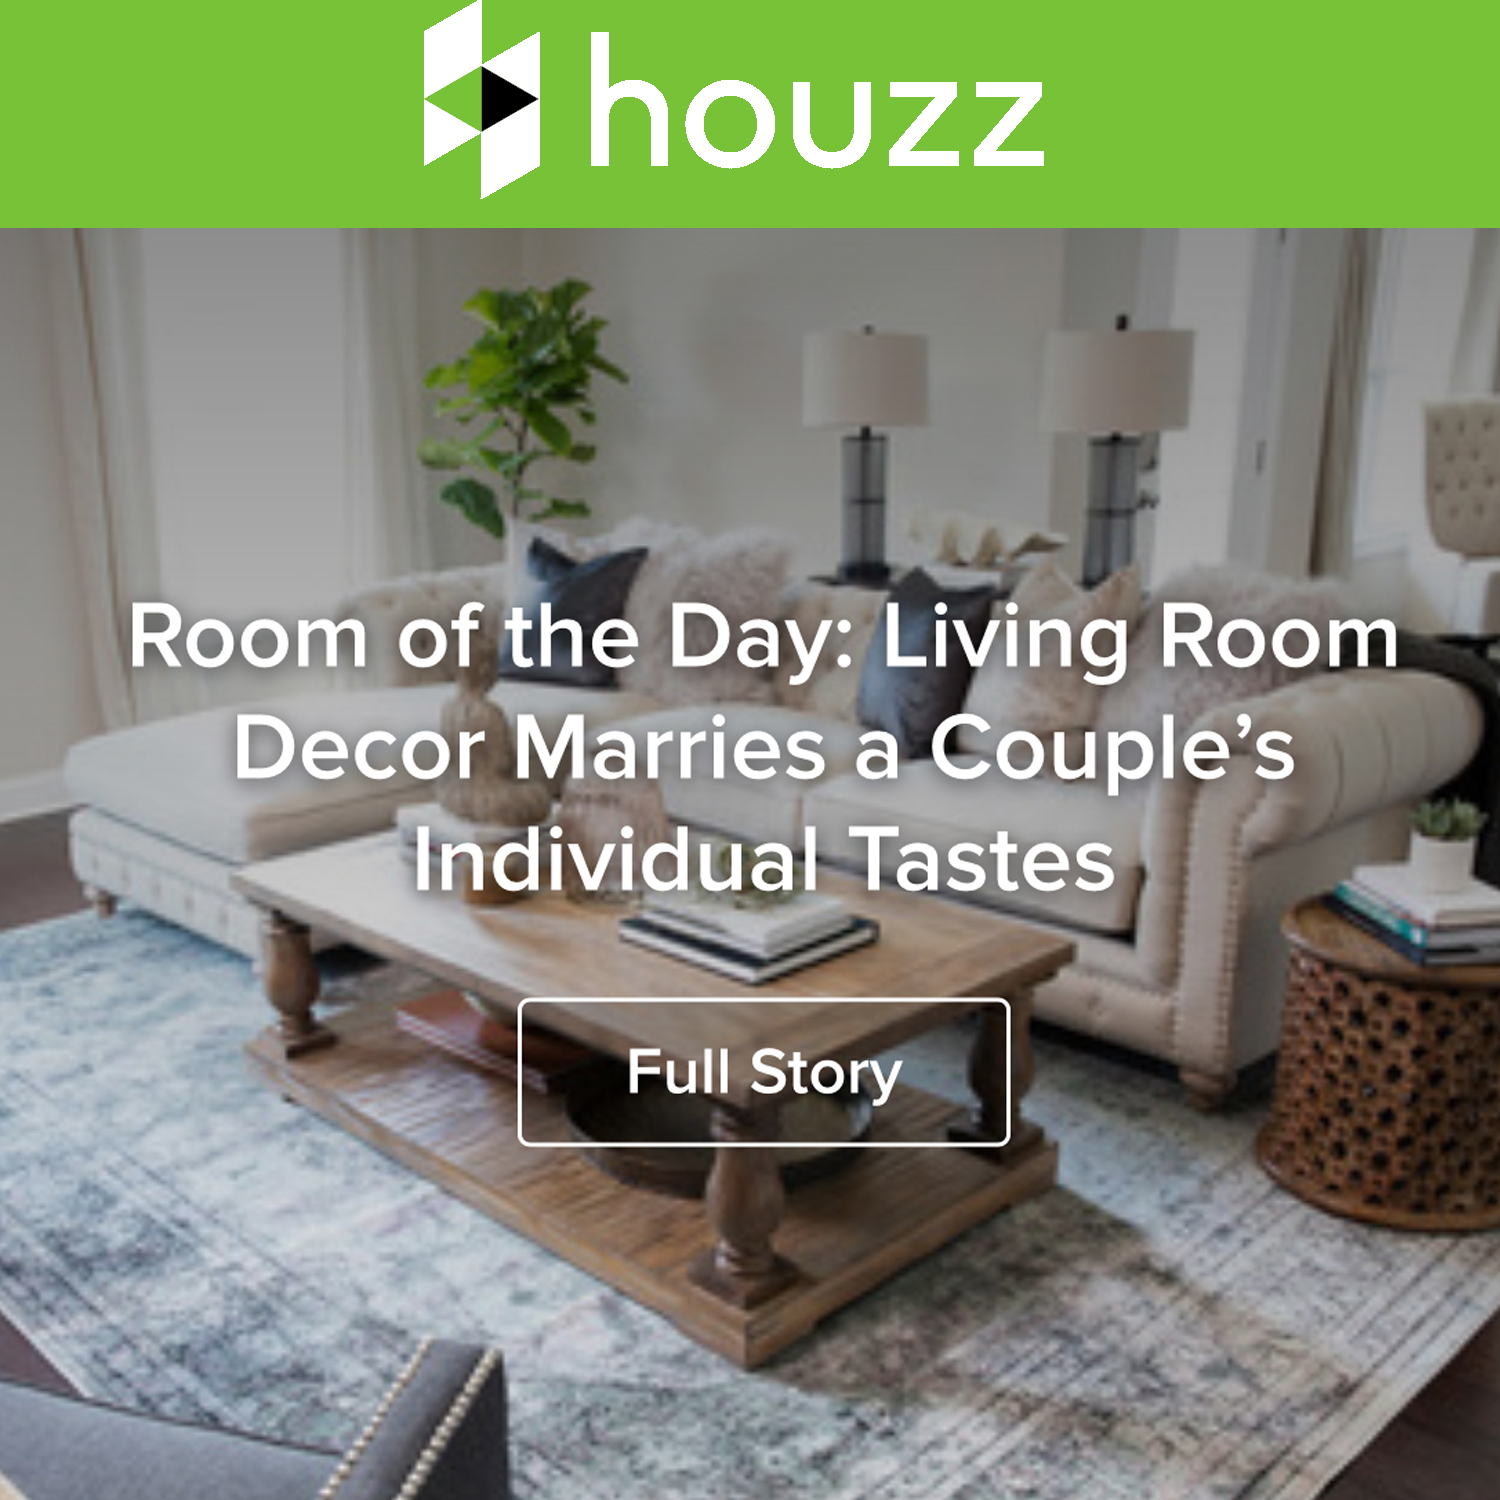 houzz room of the day july 2016-2.jpg